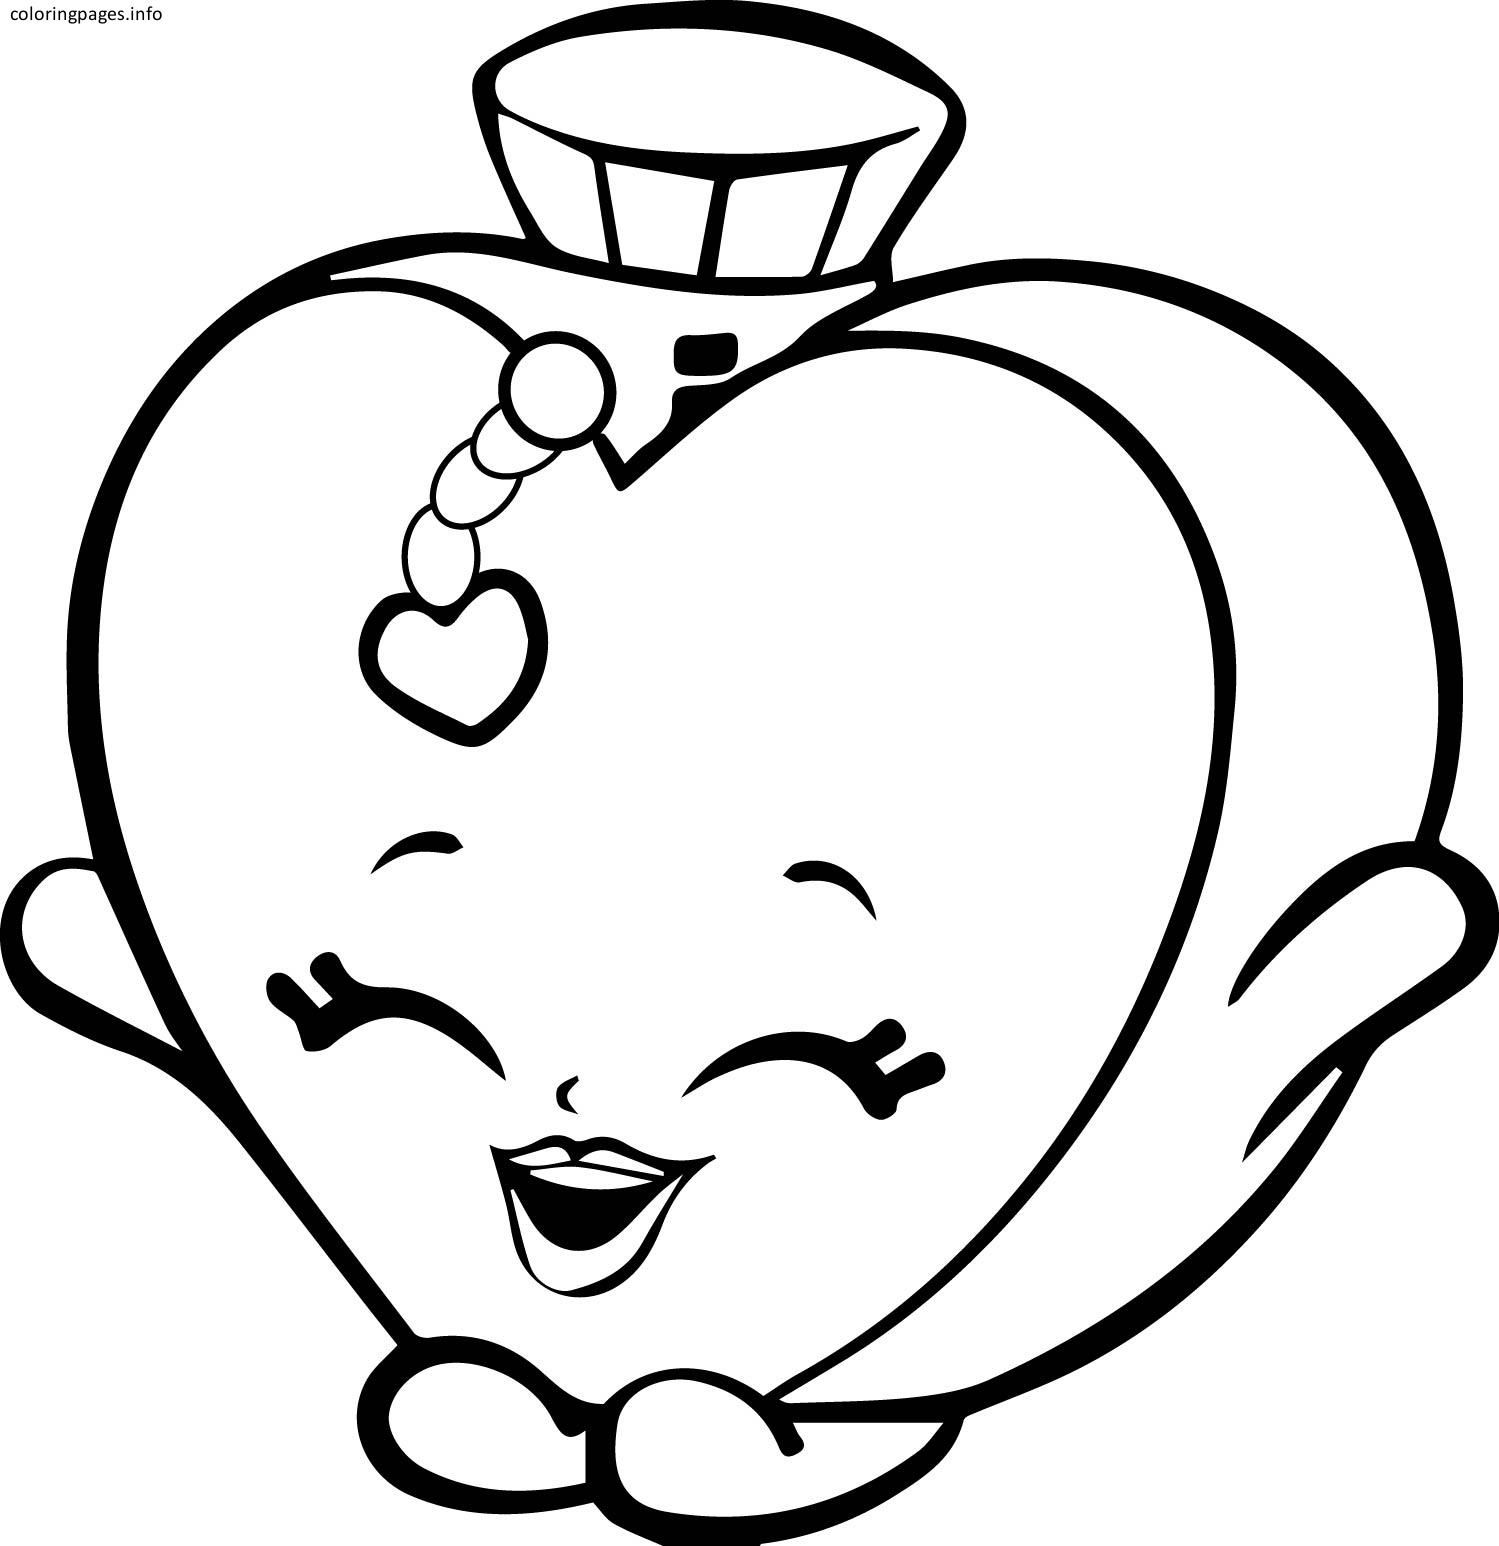 Shopkins Coloring Pages Heart Smile Shopkins Coloring Pages 23